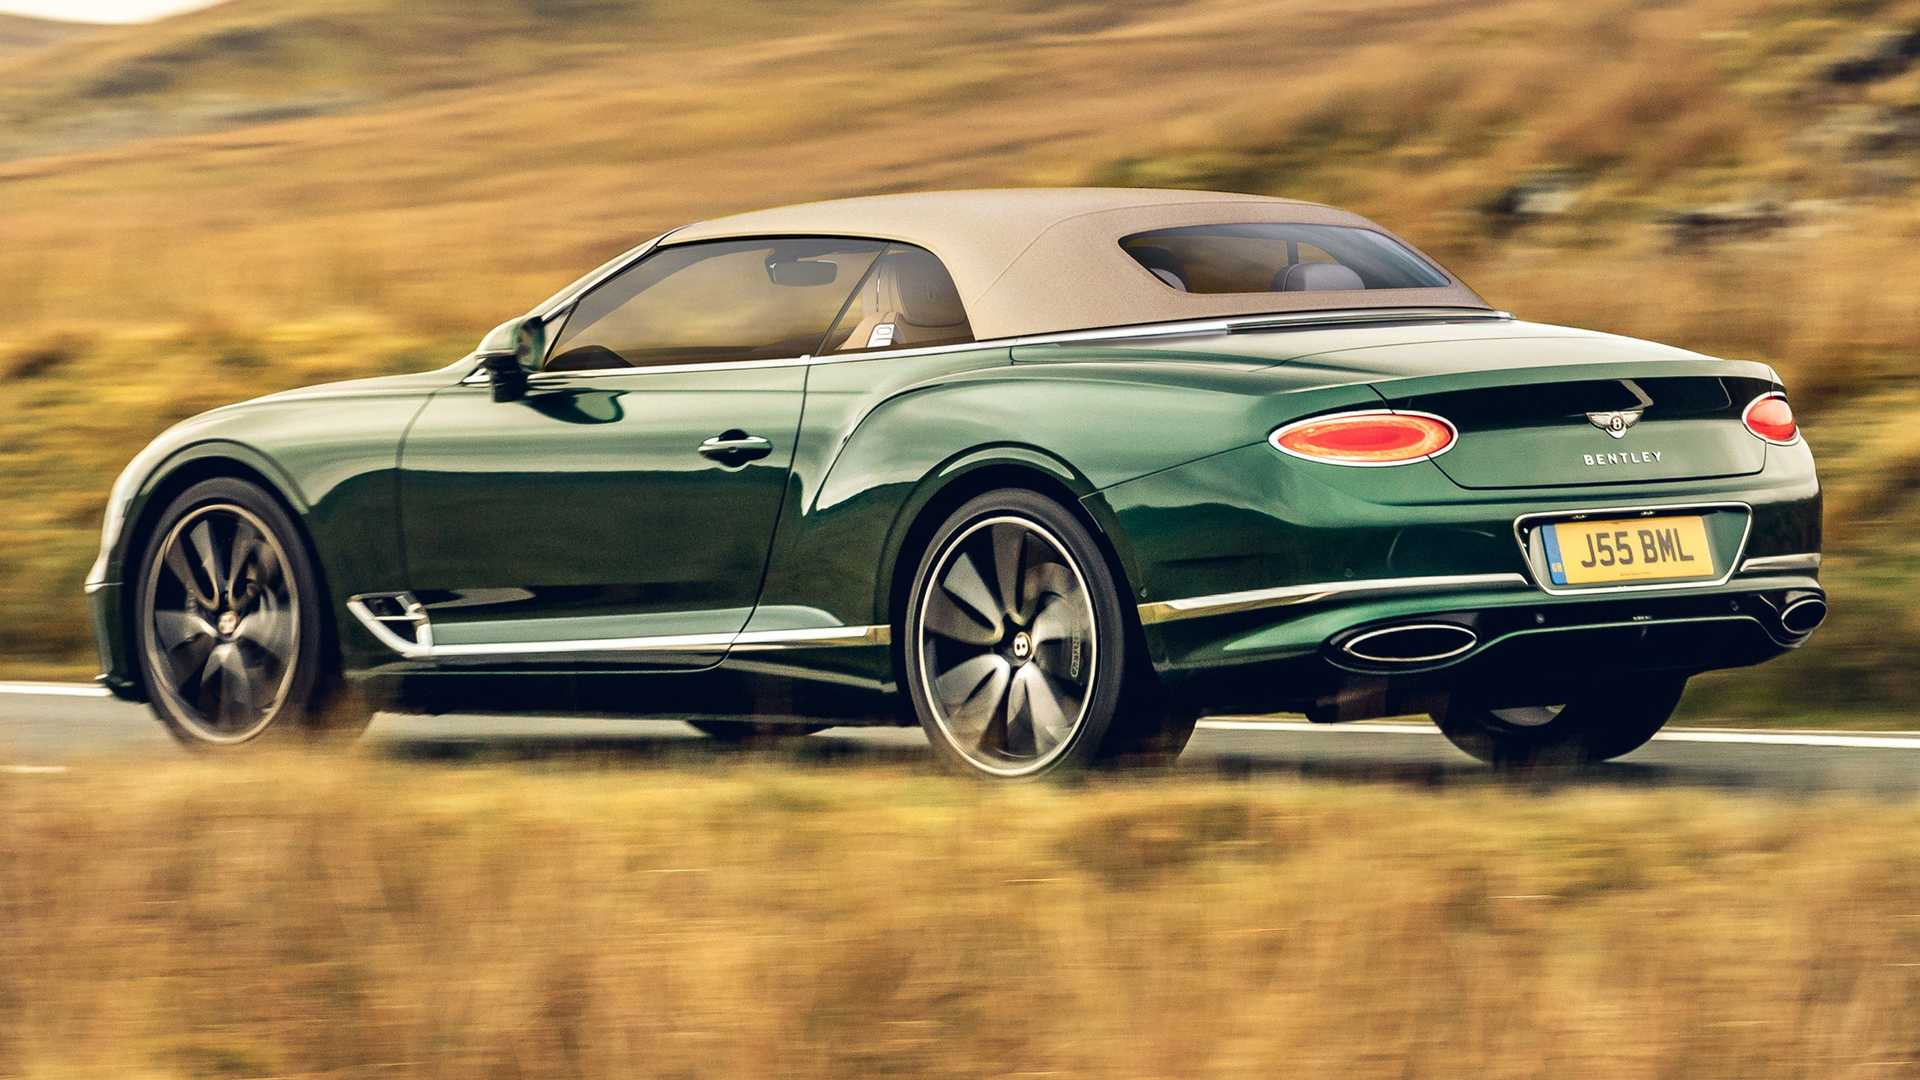 Bentley Continental GT Convertible Goes Retro With Tweed Top